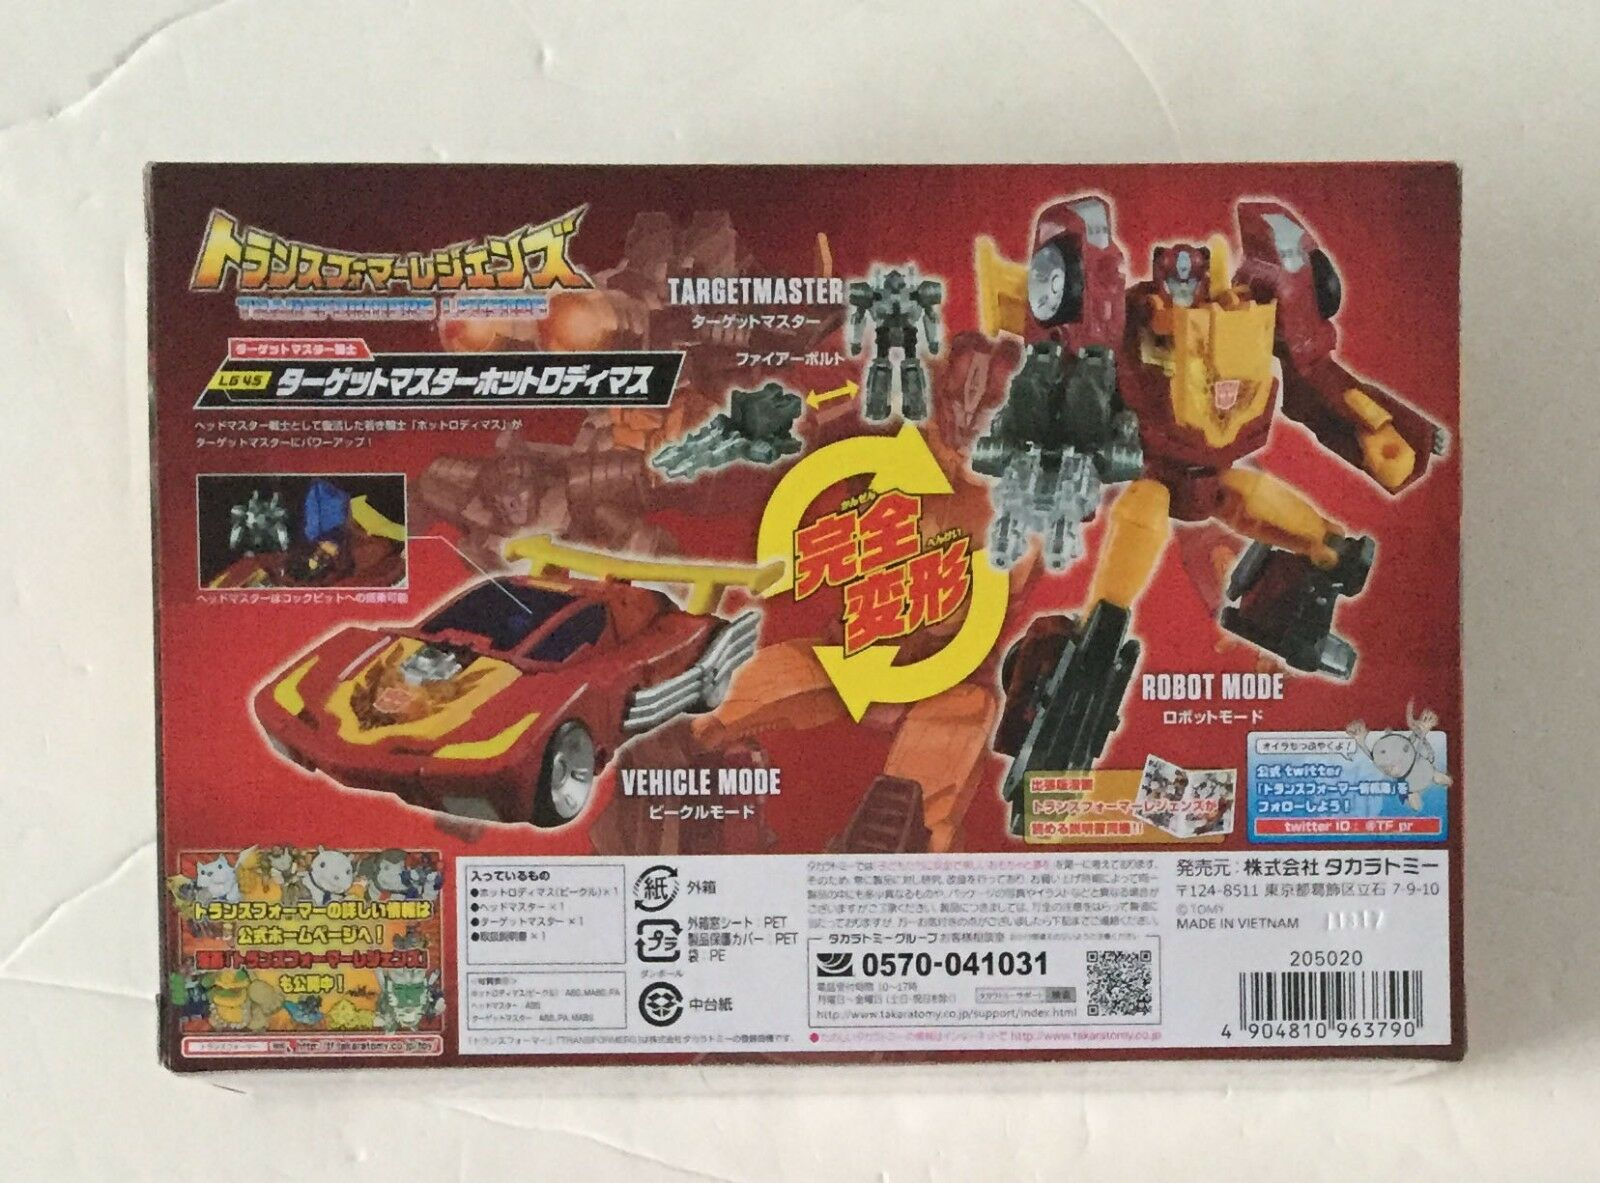 Transformers Takara Legends LG46 Hot Hot Hot Rod with Targetmaster a897f5